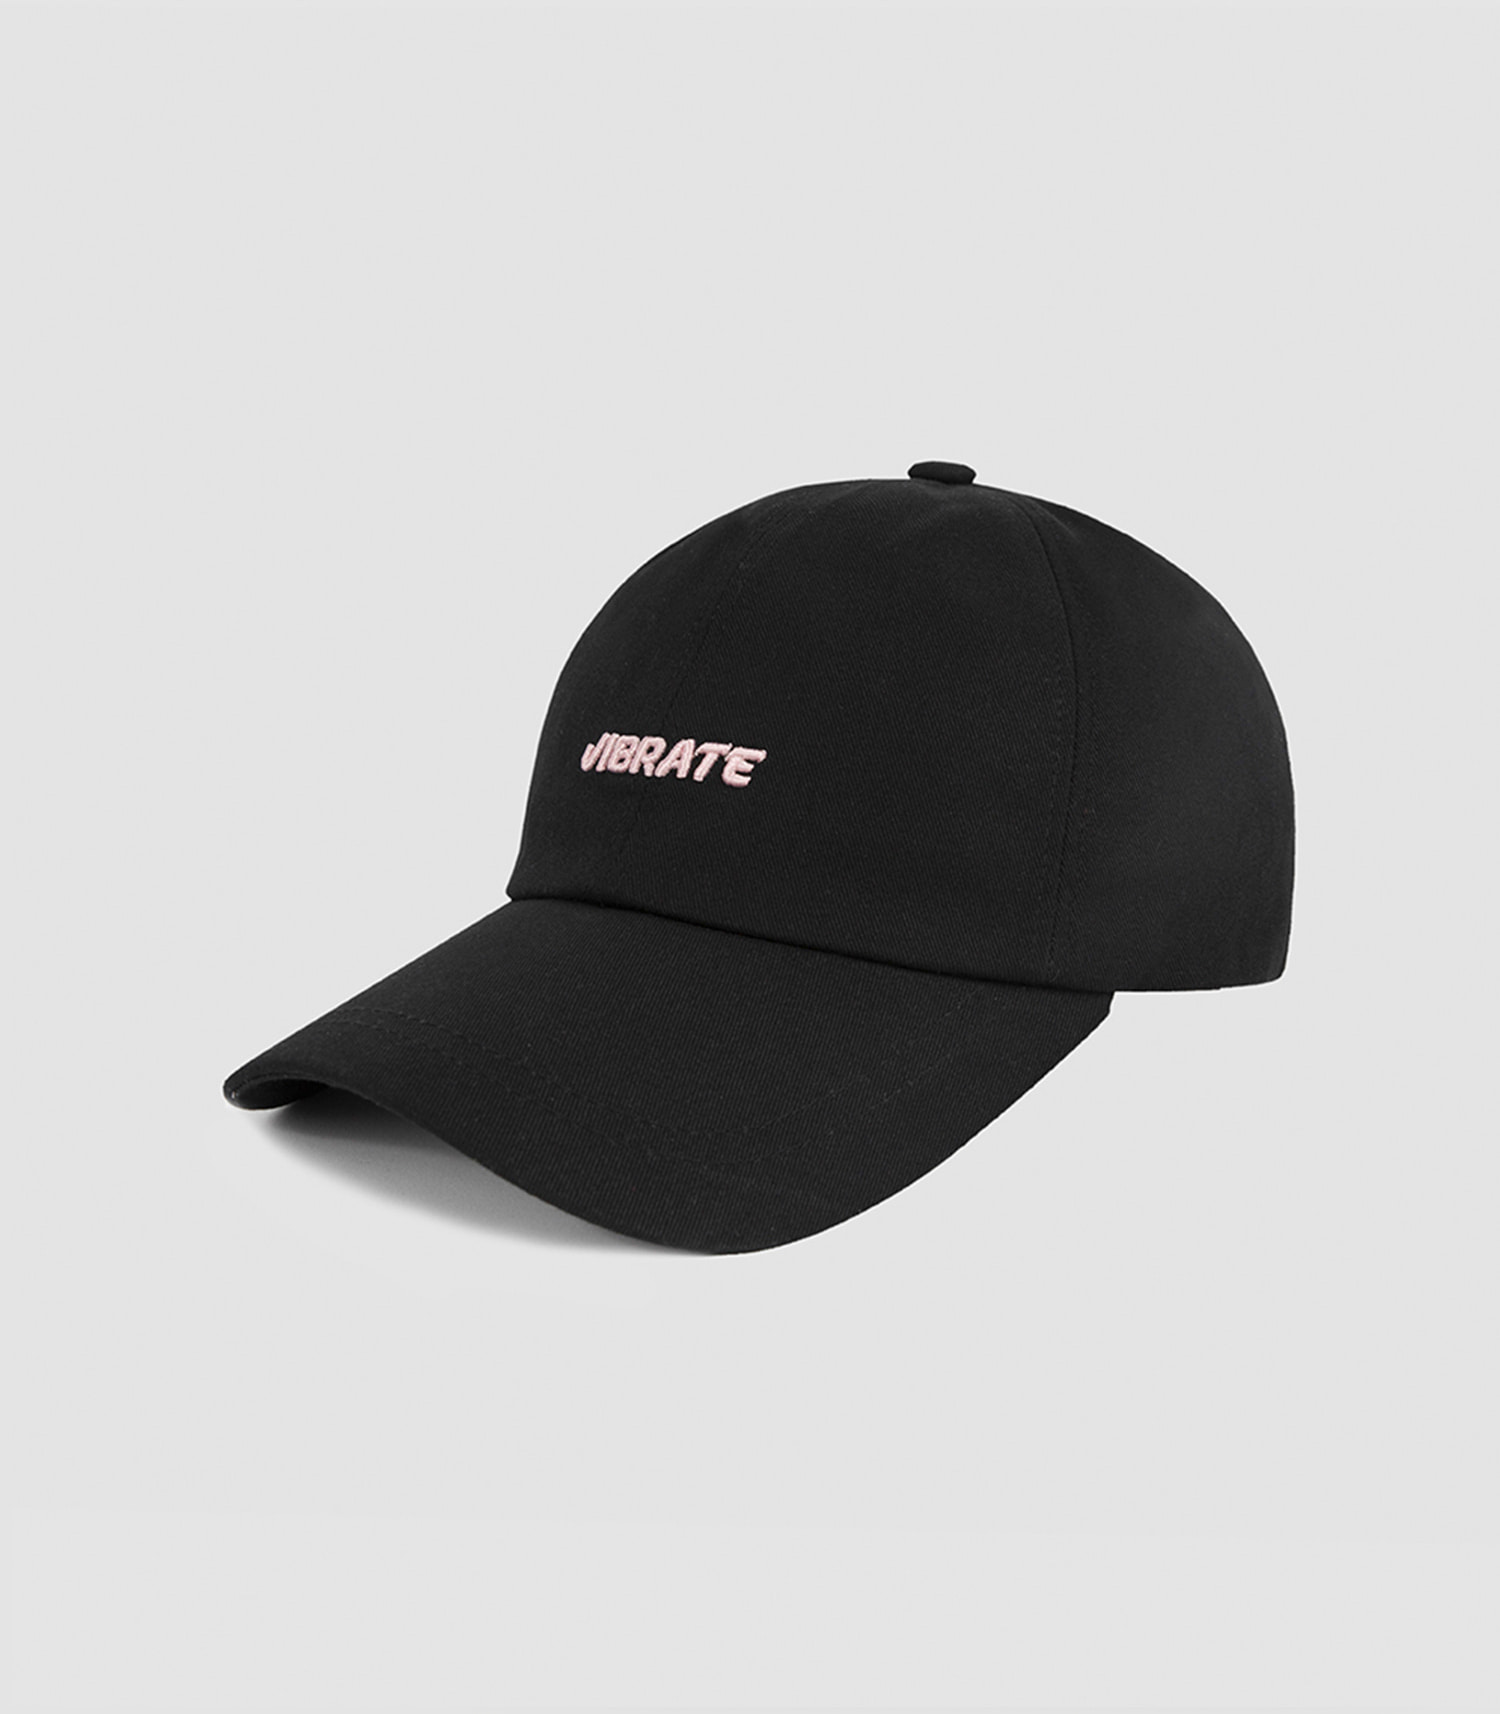 VIBRATE - 3D BASIC BALL CAP (light pink&black)